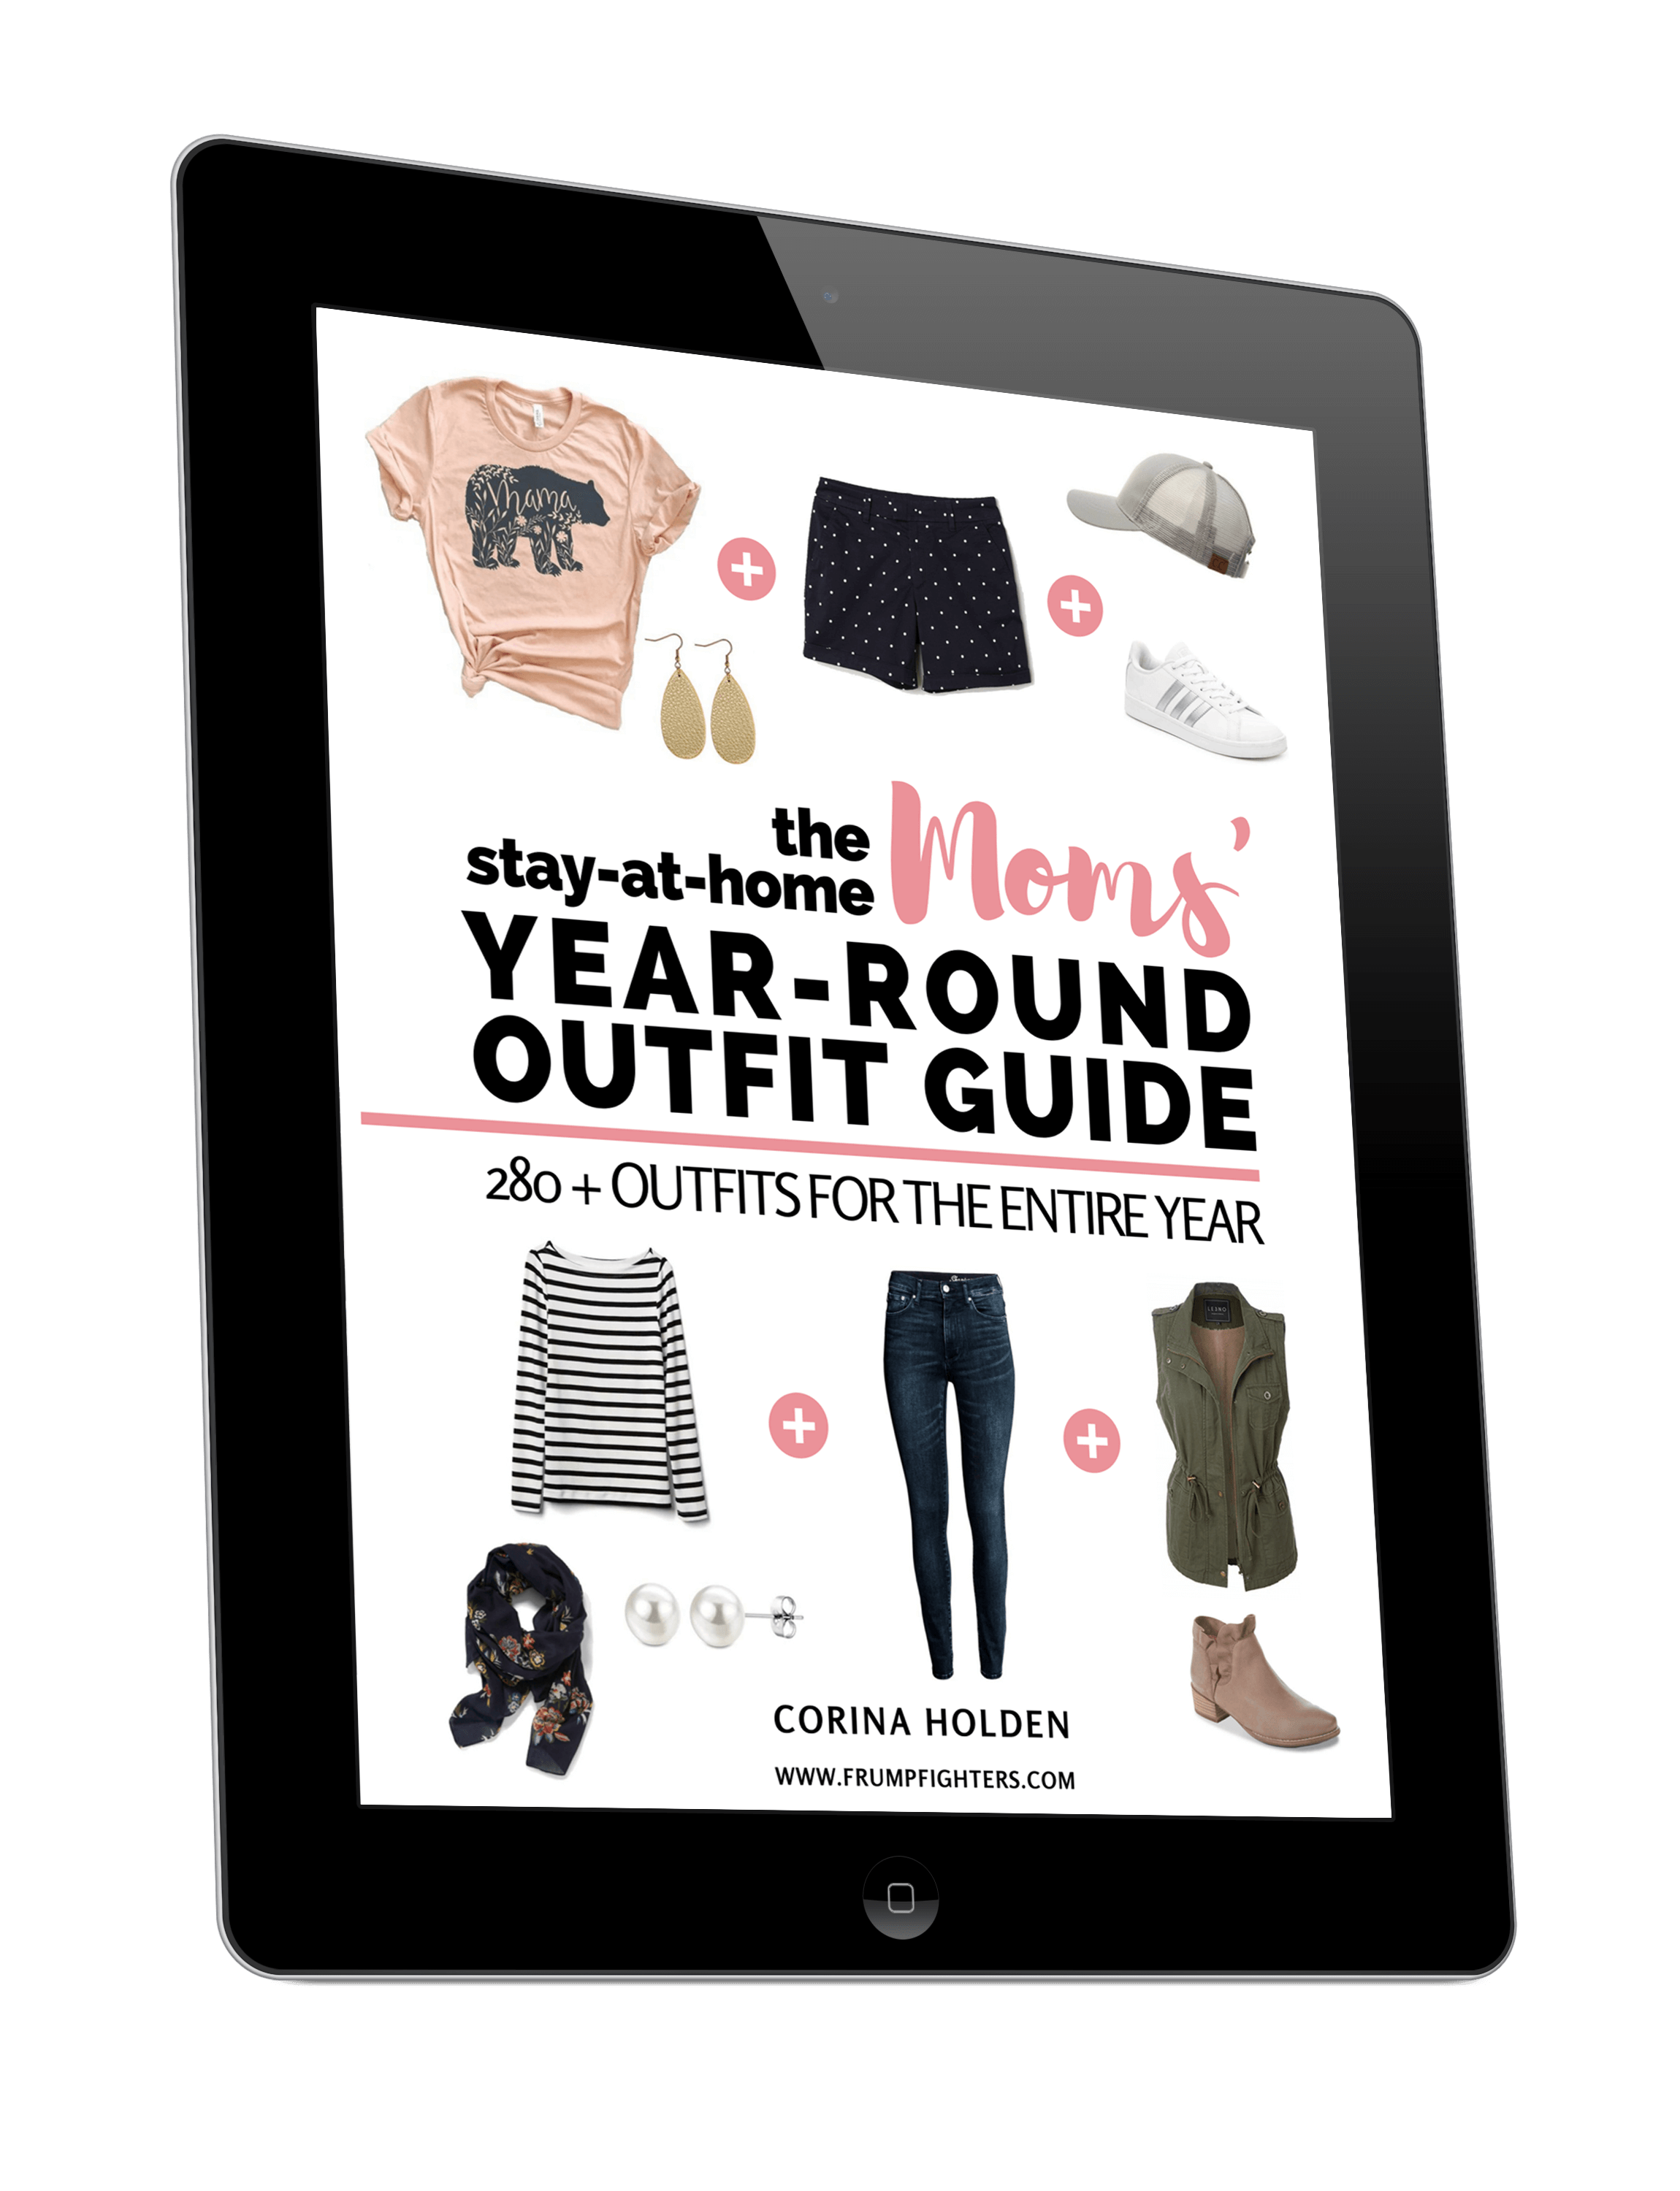 7d91a8034 Here s a breakdown of everything you get with the outfit guide suite